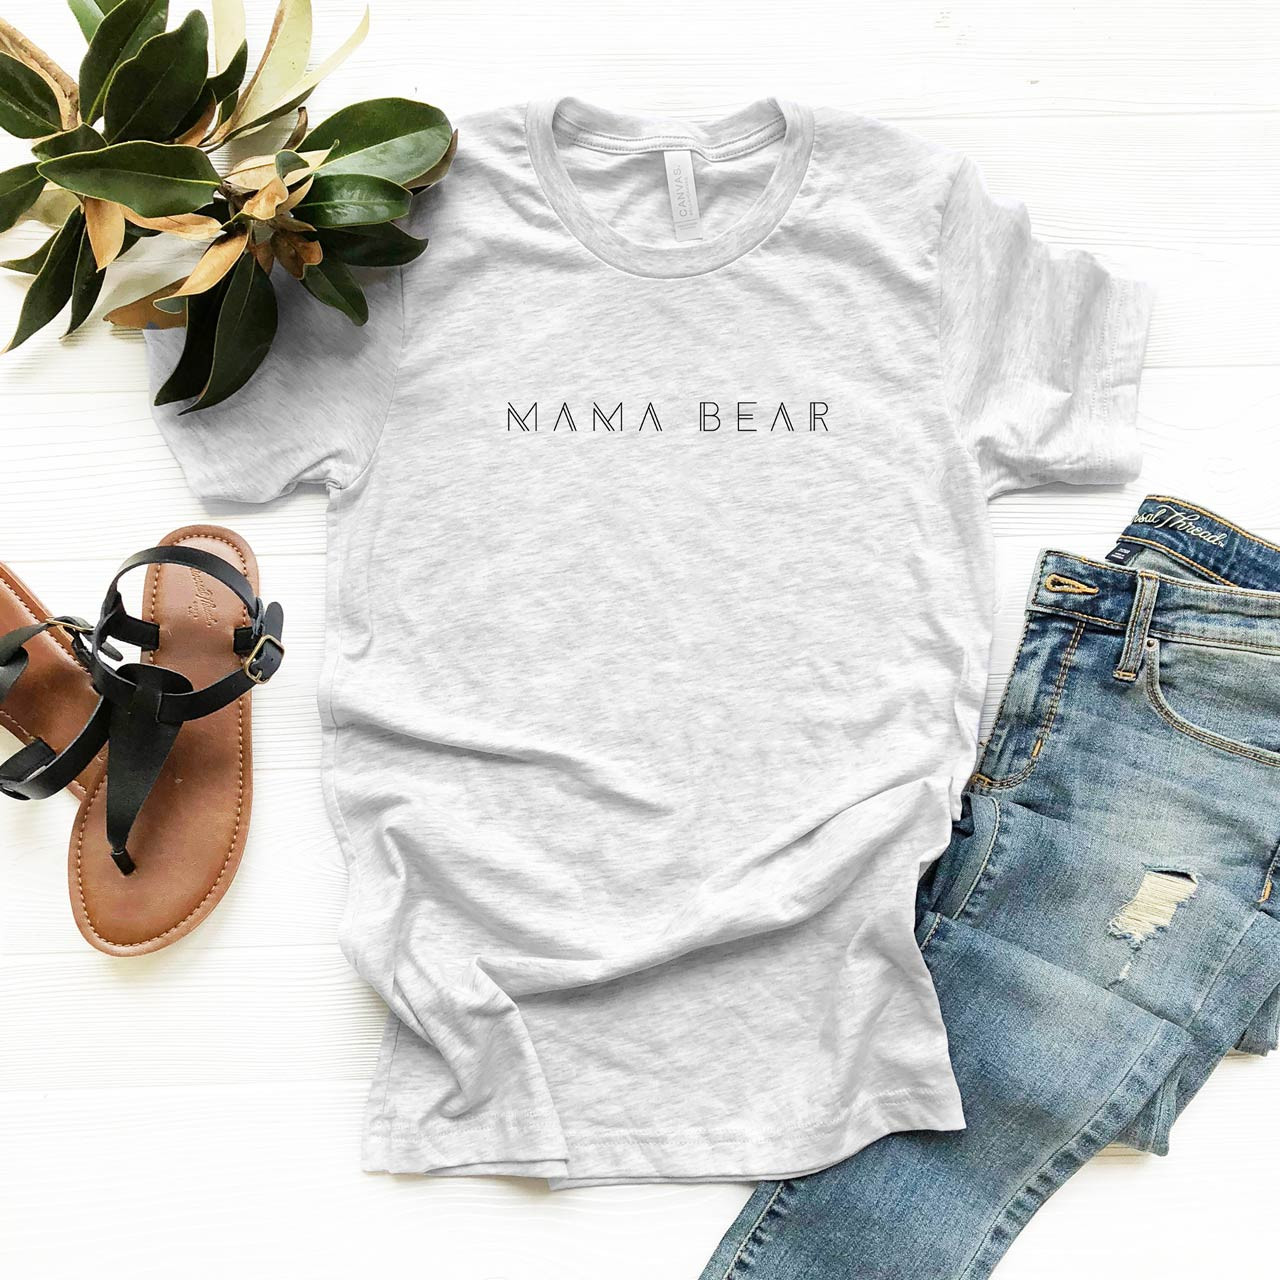 MAMA BEAR Vintage T-Shirt (Black on Light Gray Fleck) from The Printed Home